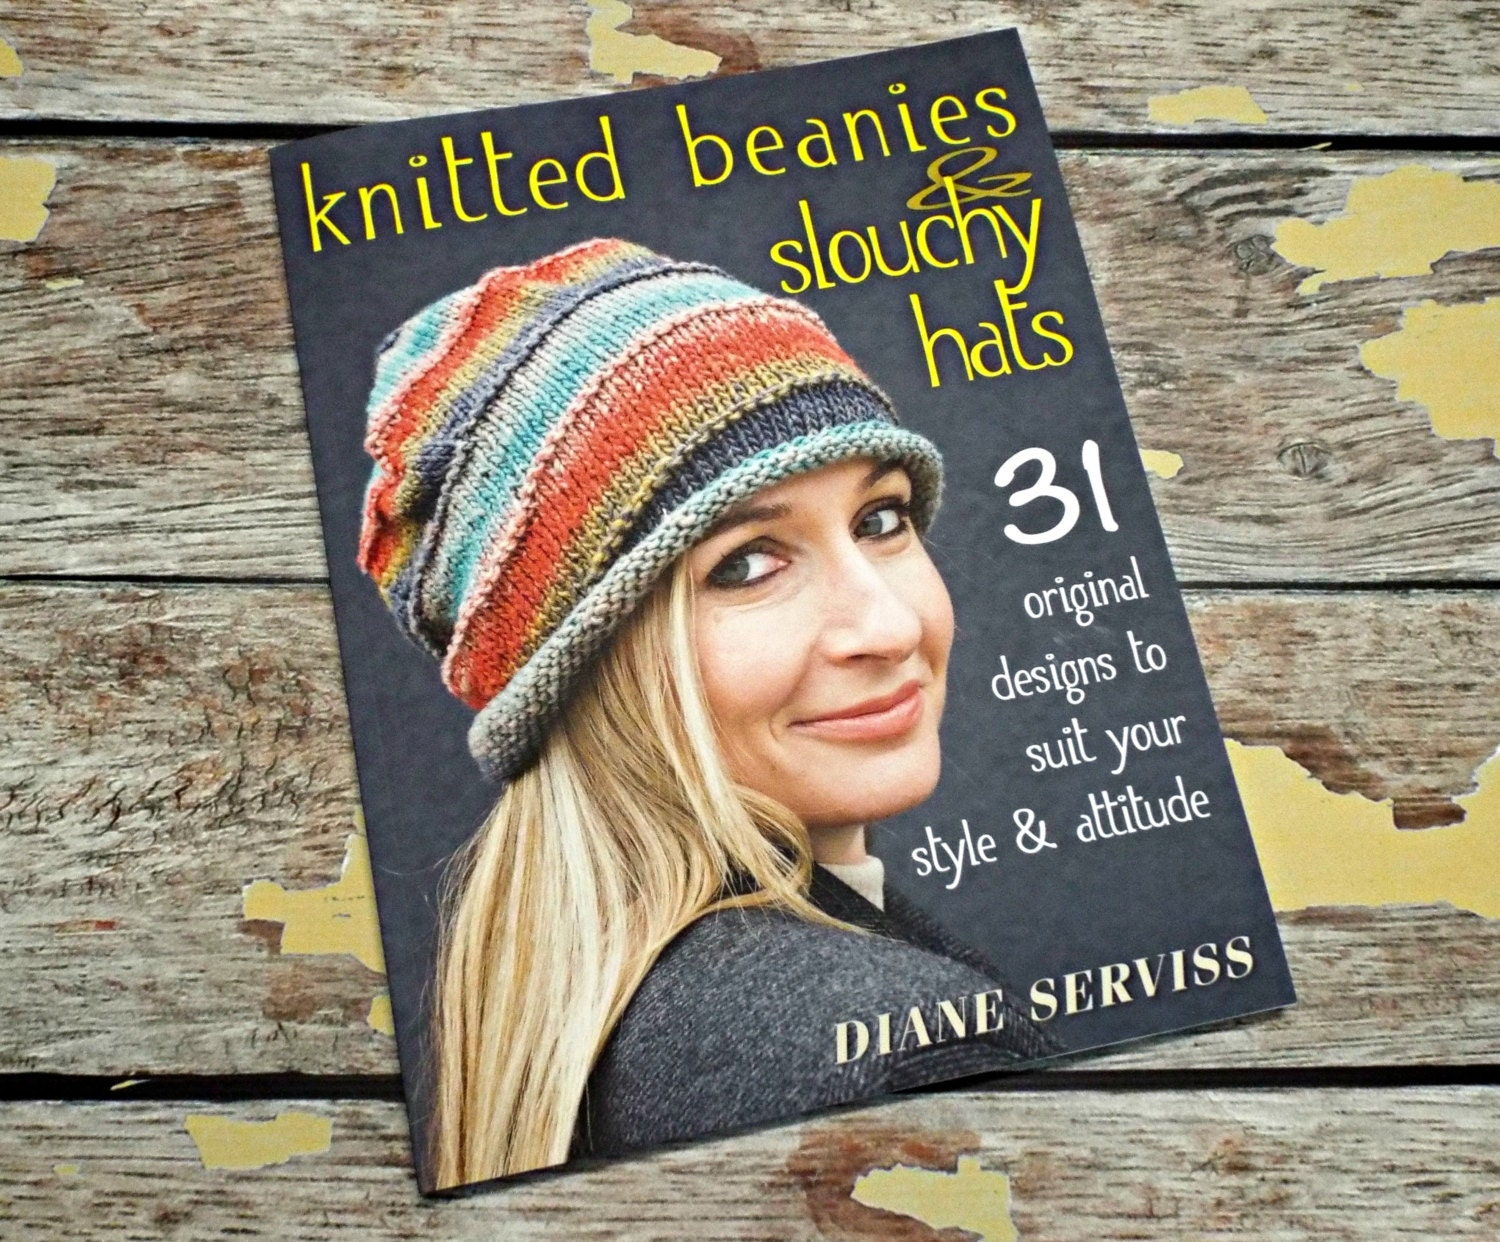 Autographed knitting pattern book knitted beanies slouchy hats autographed knitting pattern book knitted beanies slouchy hats 31 original designs to suit your style and attitude by diane serviss bankloansurffo Images